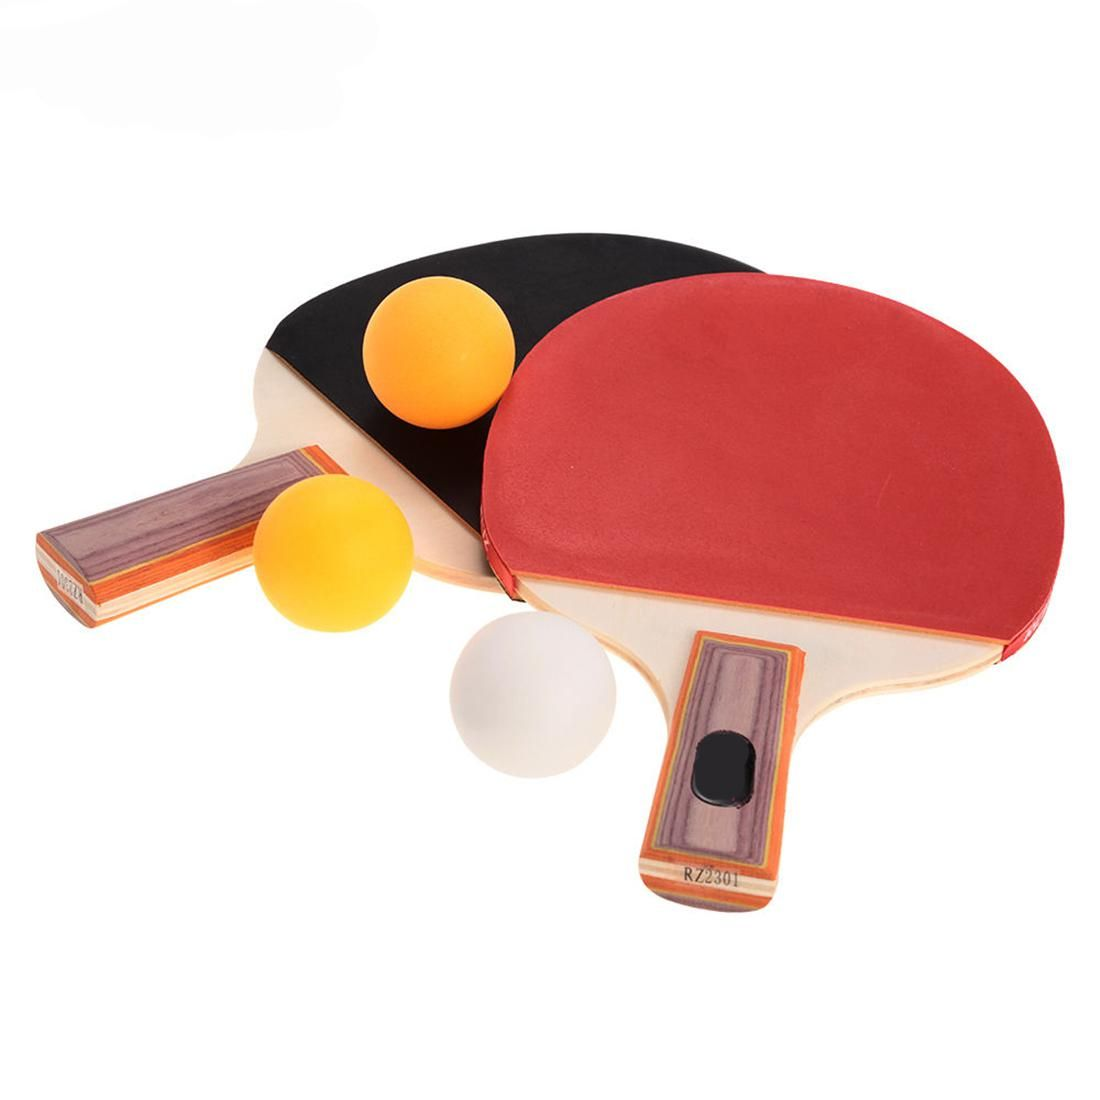 Hot Sale 1 Pair Table Tennis Ping Pong Rubber Racket Paddle Bat Sports Training Black Or Red Wood Handle Yesterday S Price Us 14 1 Table Tennis Racket Rackets Ping Pong Paddles